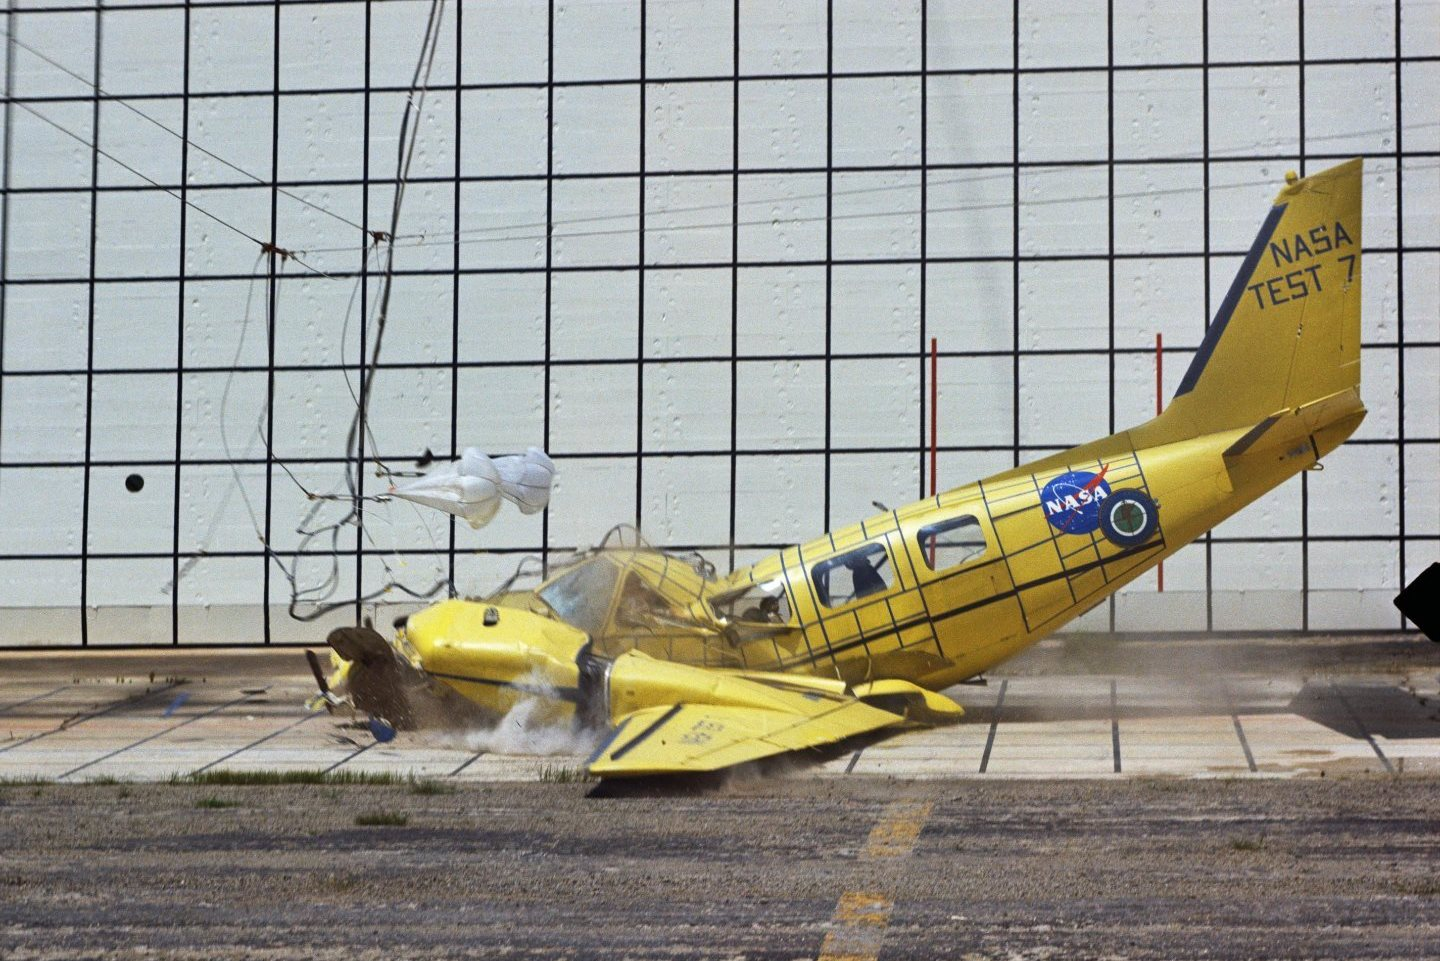 NASA & FAA Push Crashworthiness